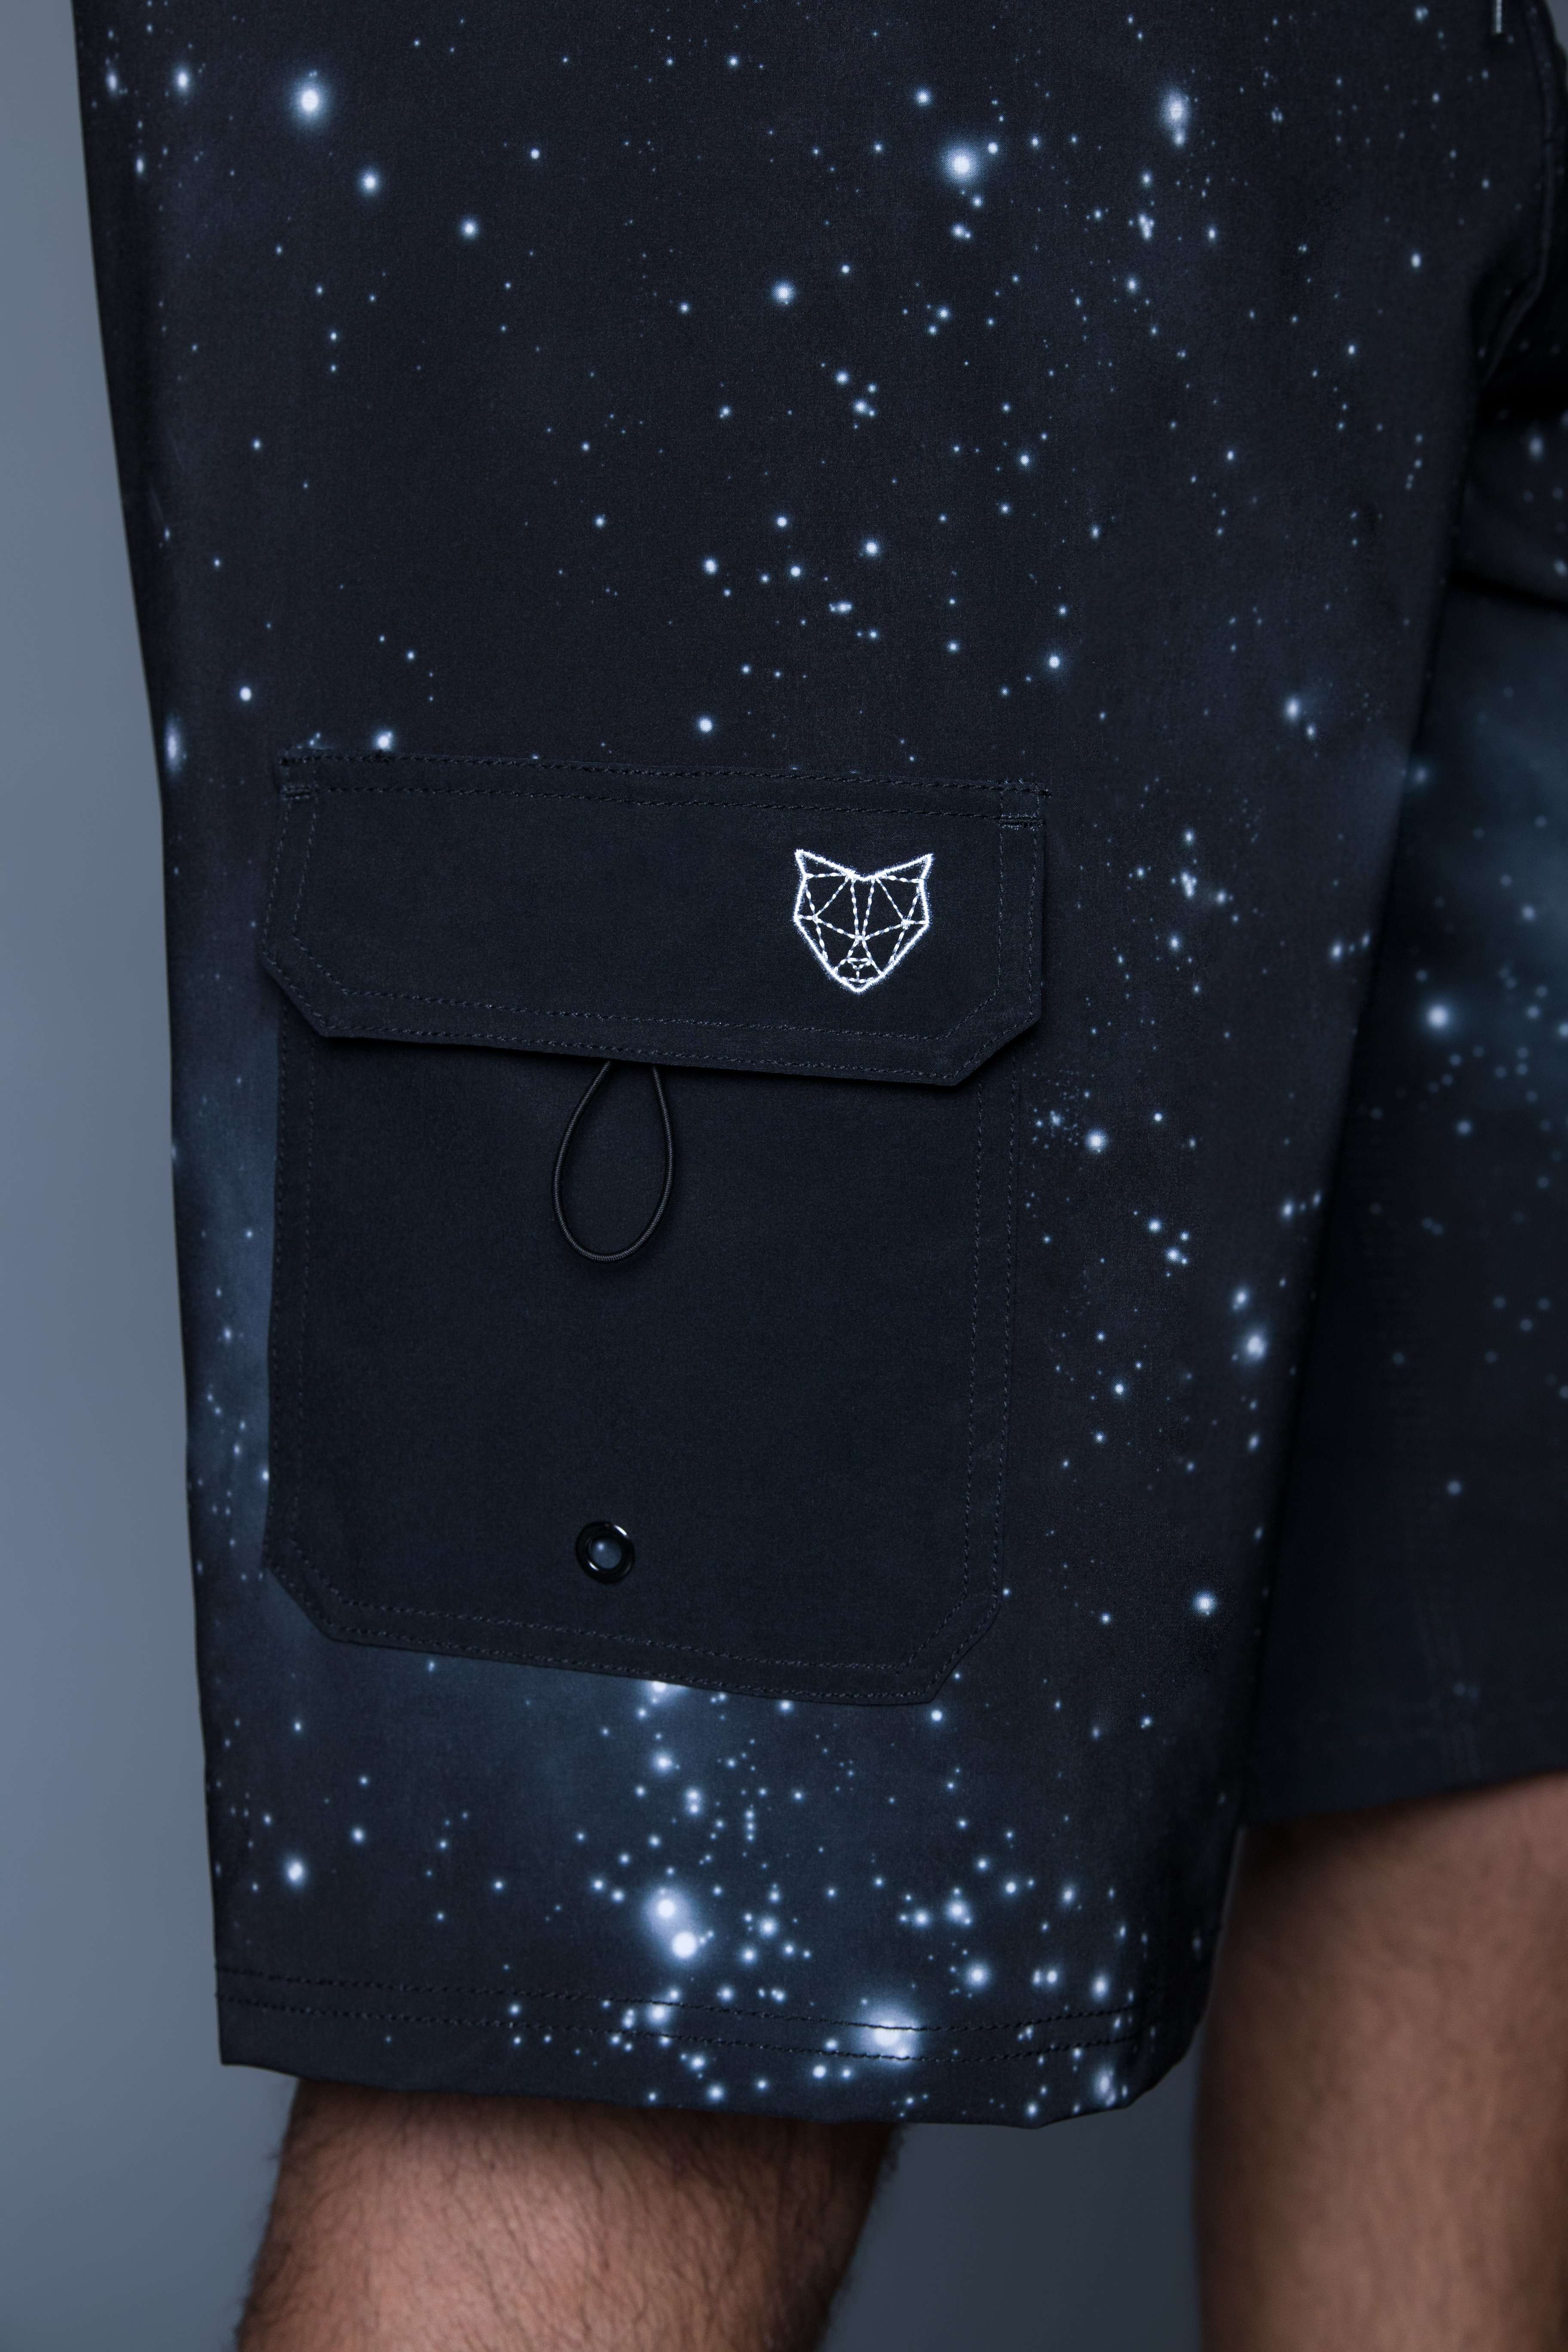 zod boardshorts for tall guys in space (black with white details). The perfect boardshorts for tall men.